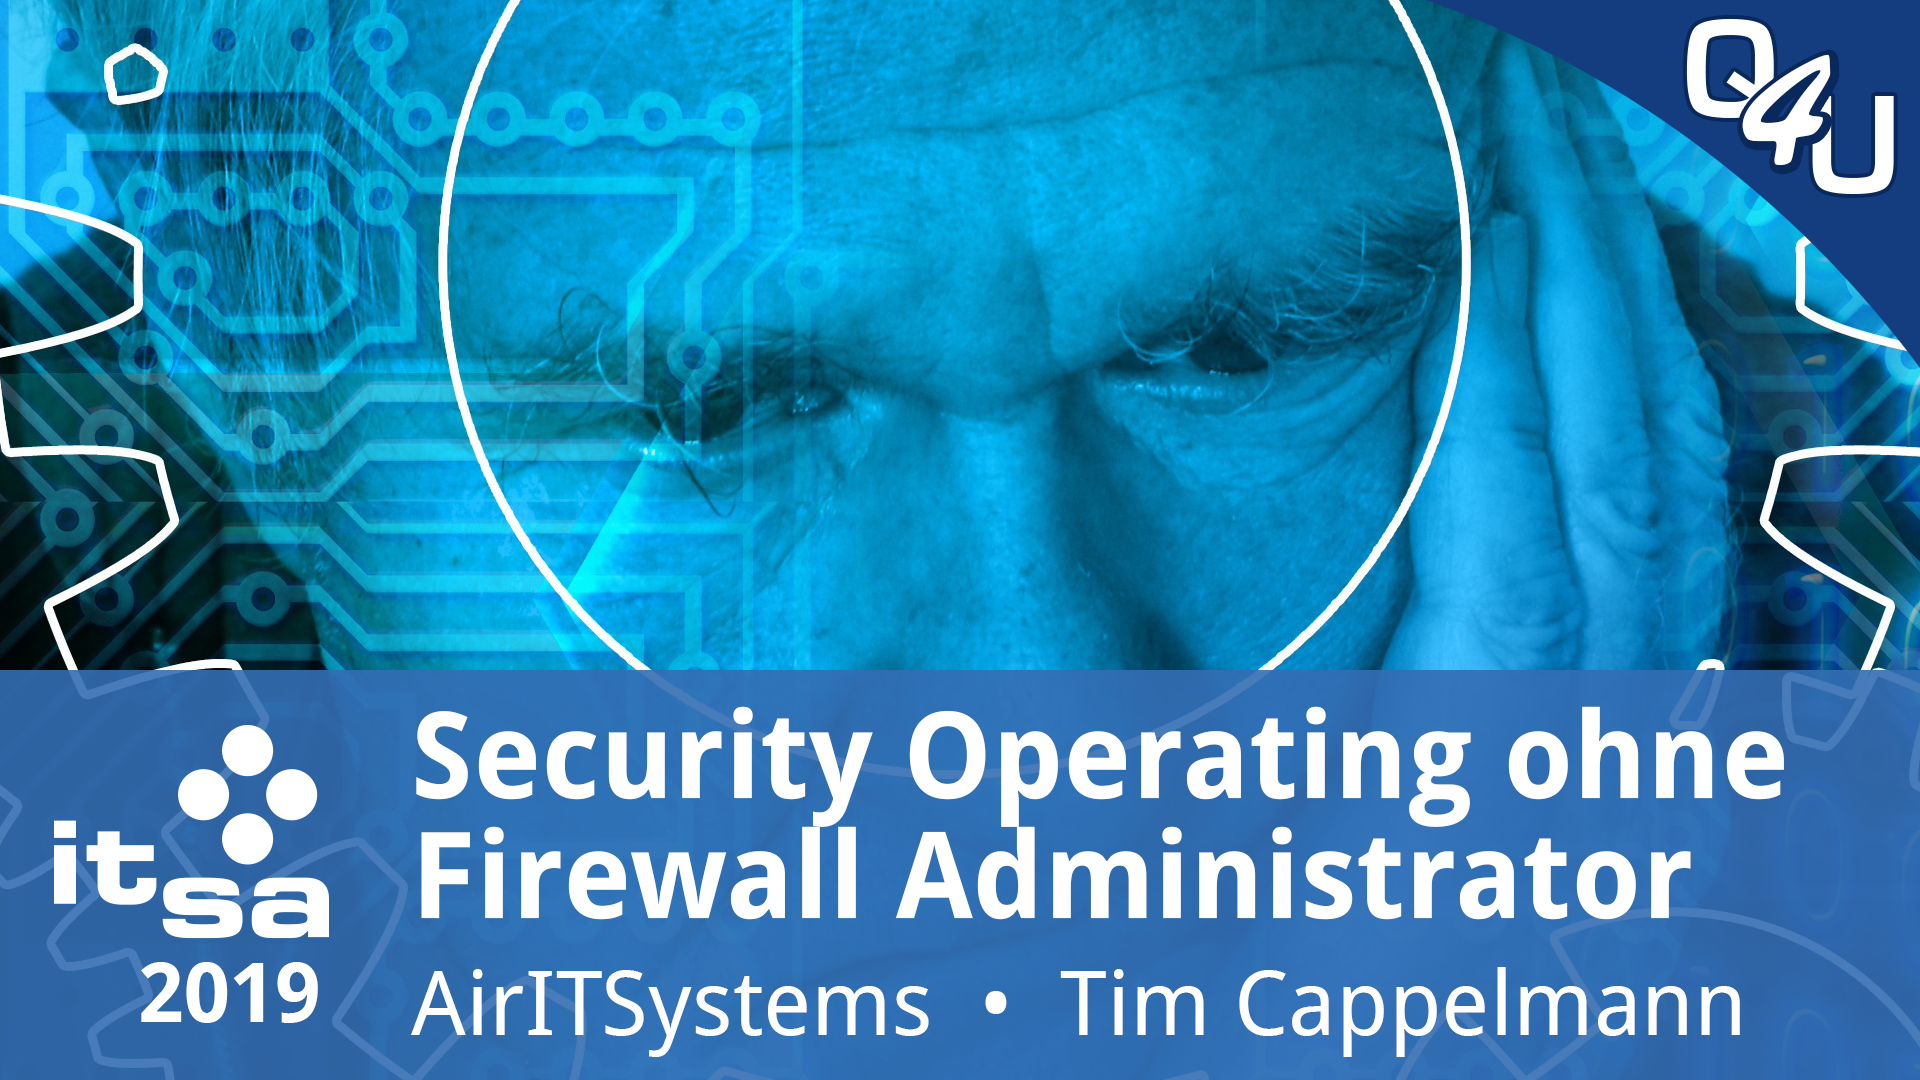 it-sa 2019: Security Operating ist Attack & Defense ohne Firewall Admin – AirITSystems | QSO4YOU.com